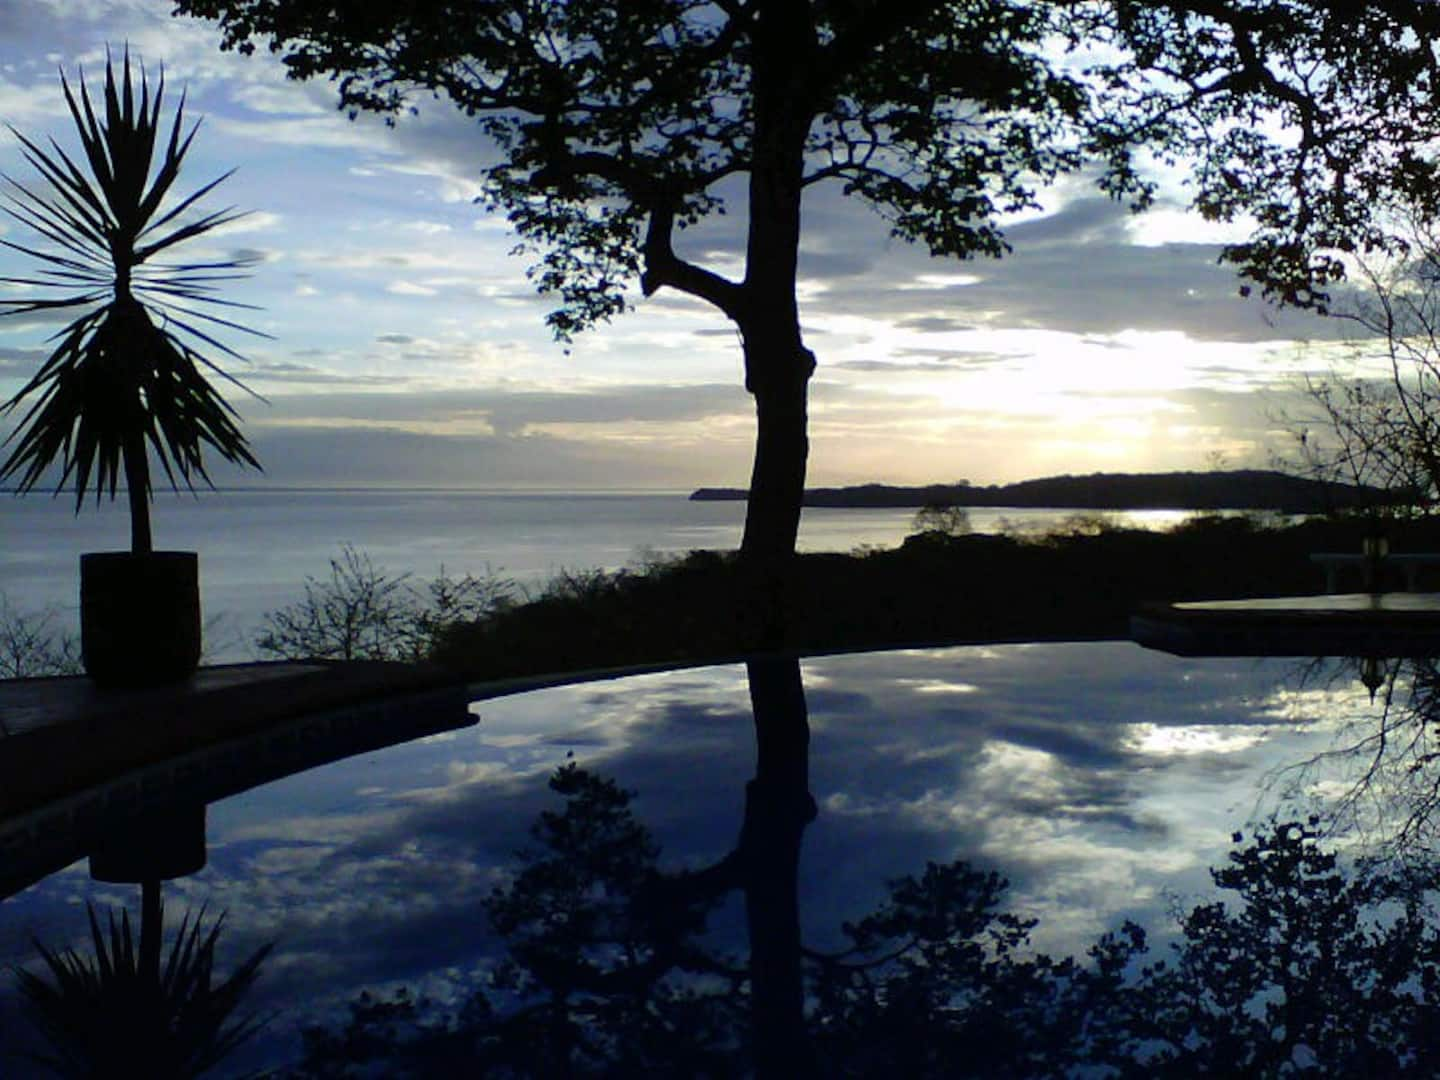 Costa Rica Airbnb with Infinity PoolCosta Rica Airbnb with Infinity Pool